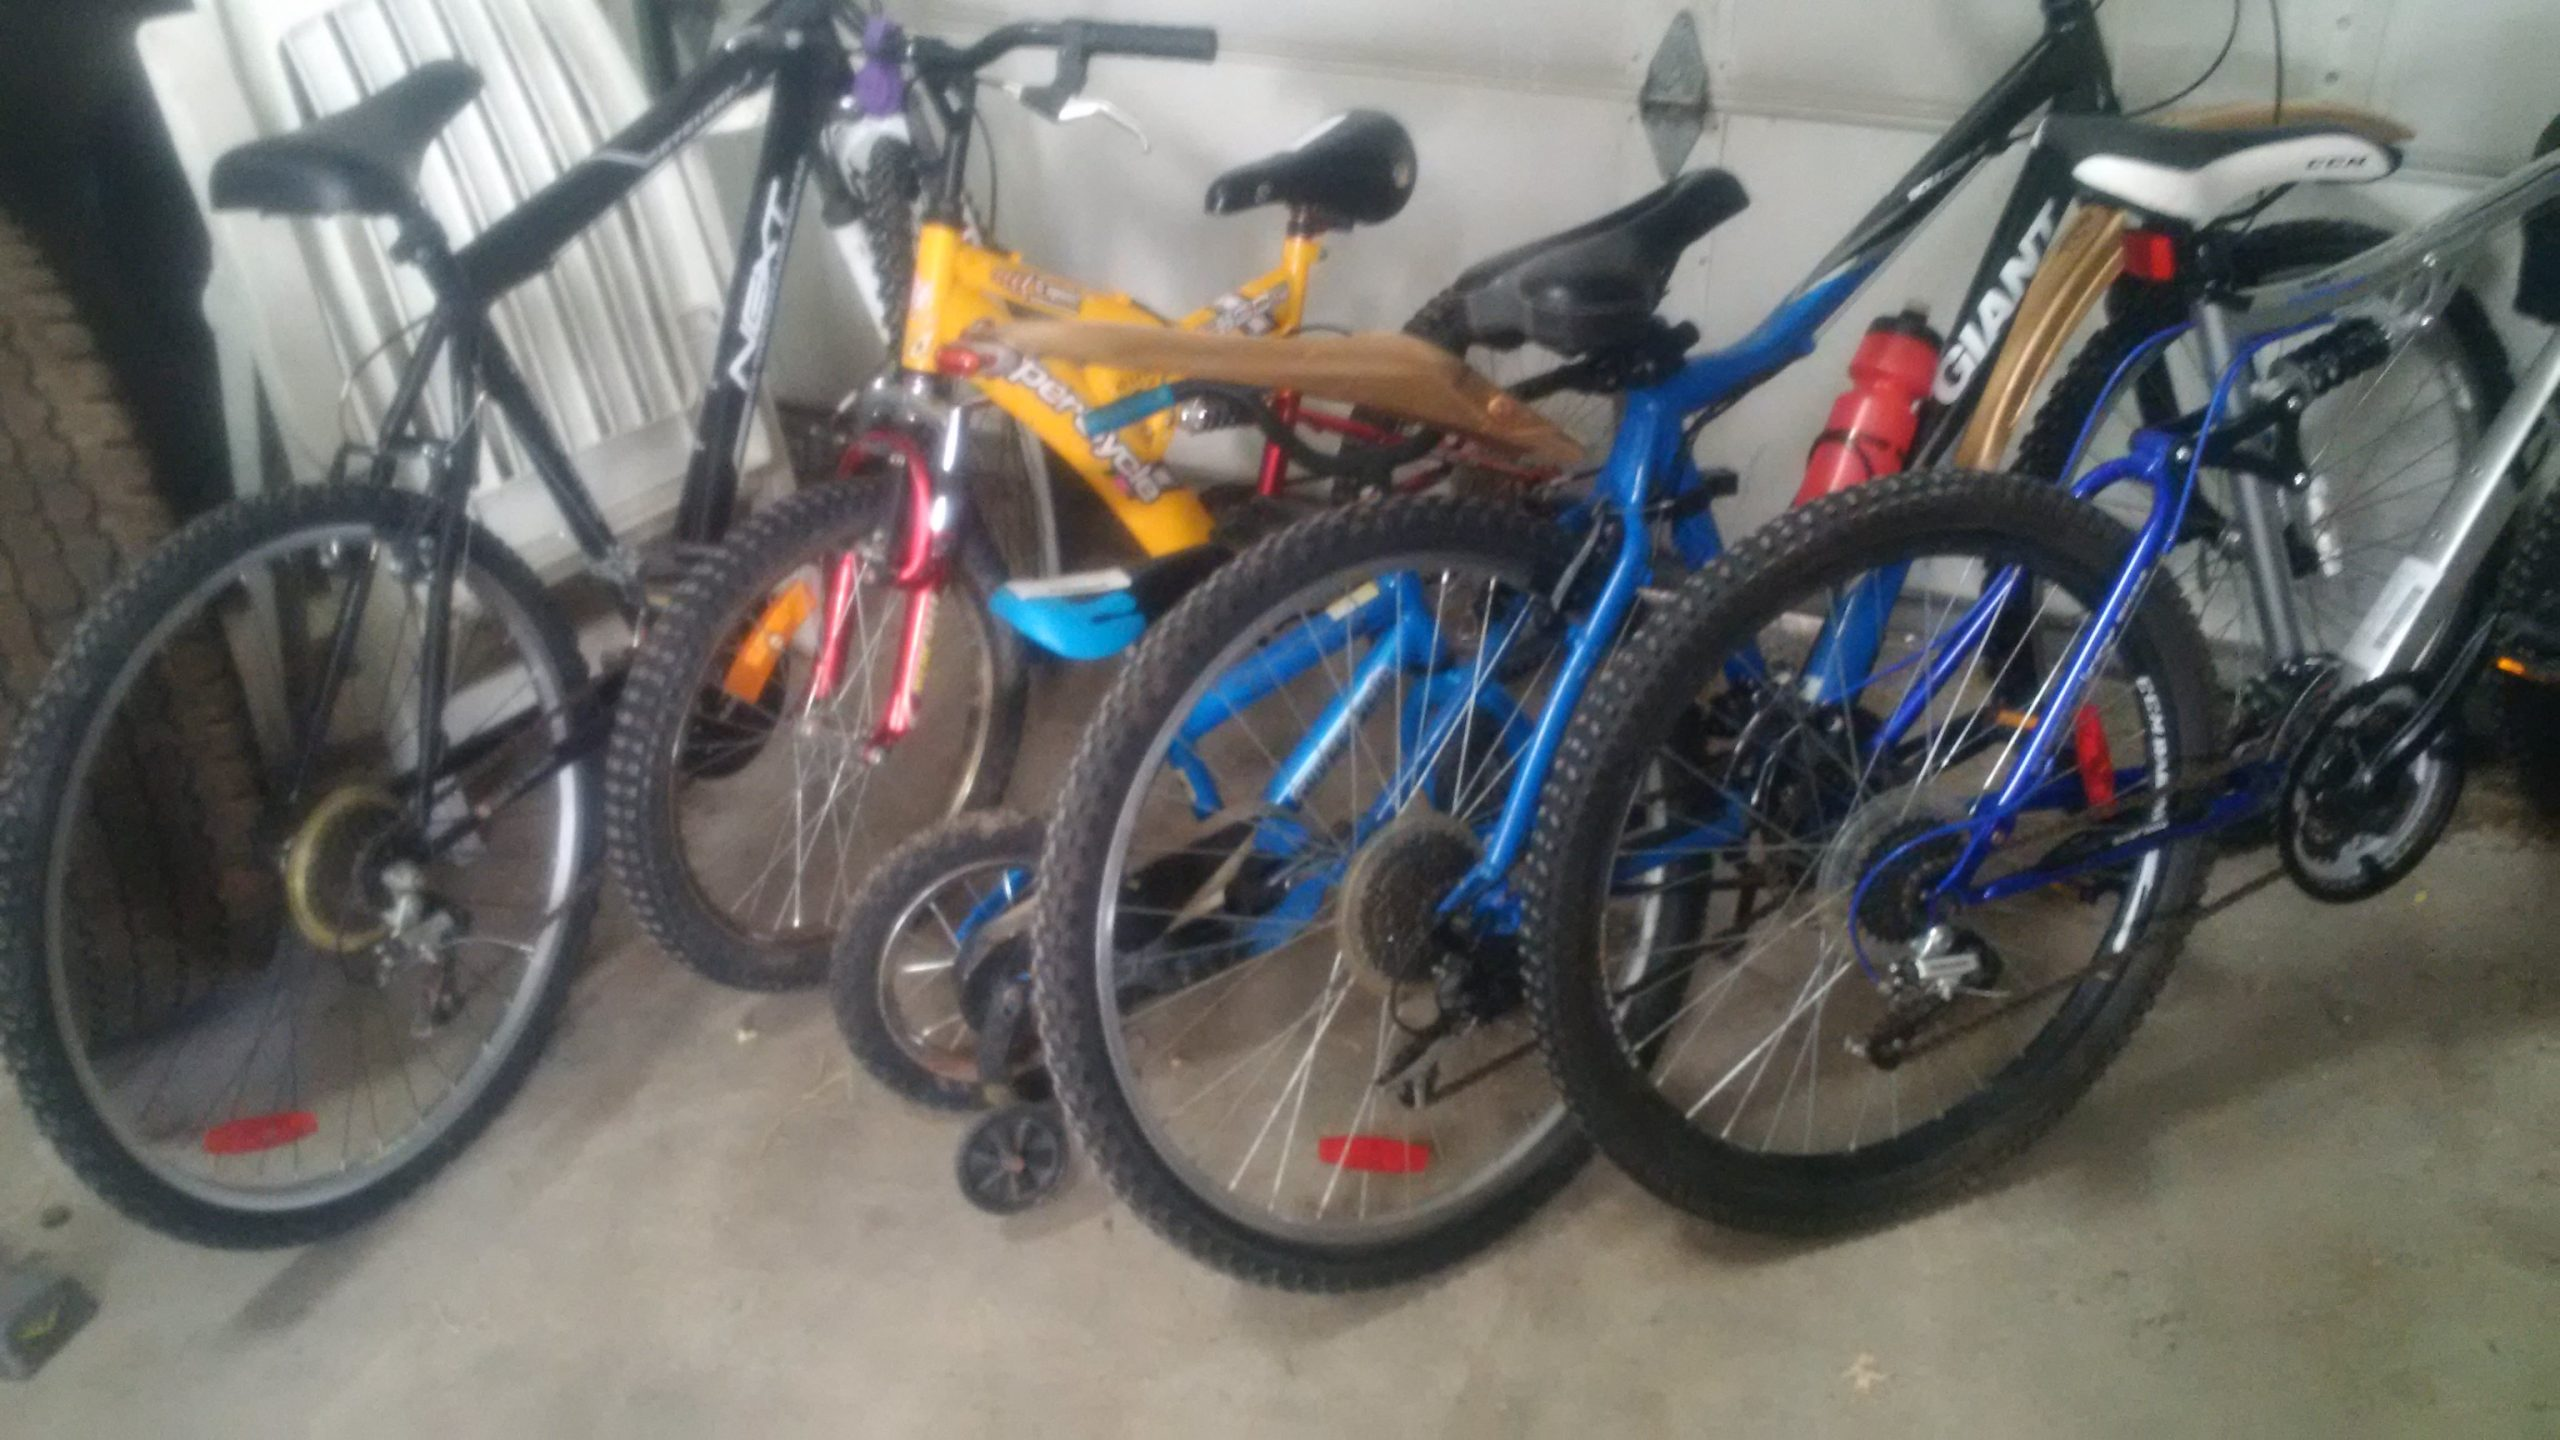 Kimberley RCMP hope to reunite lost bikes with proper owners